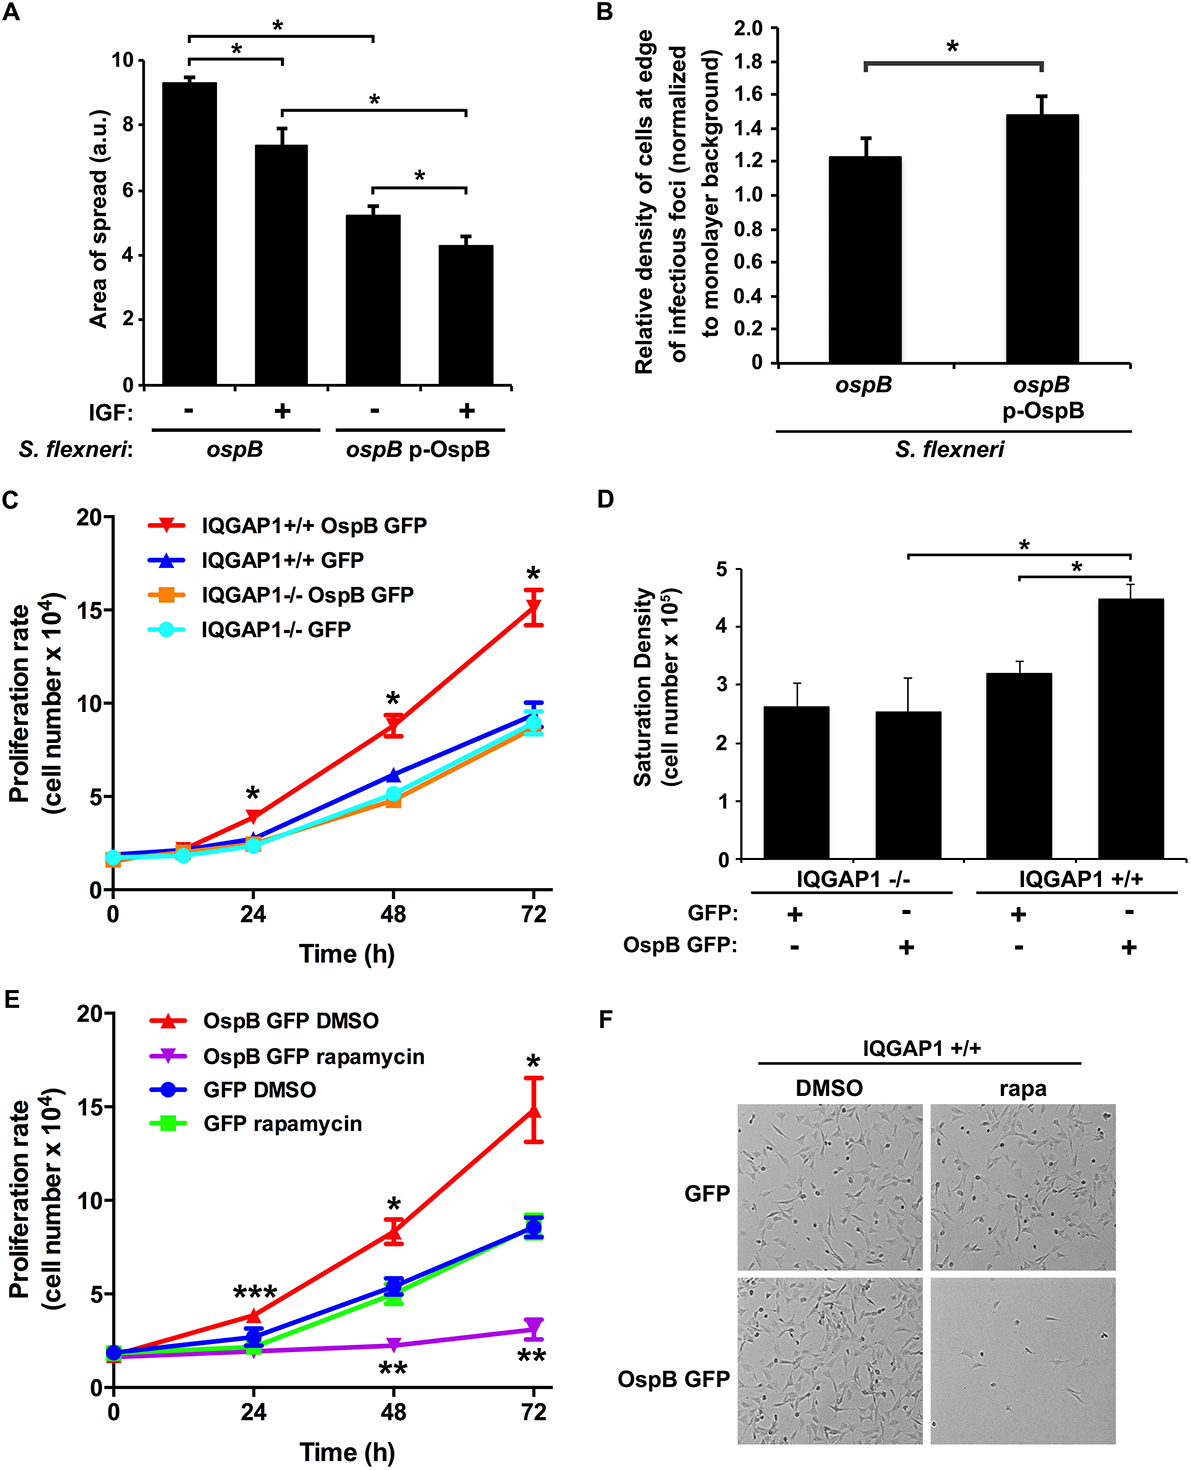 OspB enhances cell proliferation dependent on IQGAP1 and inhibited by rapamycin.